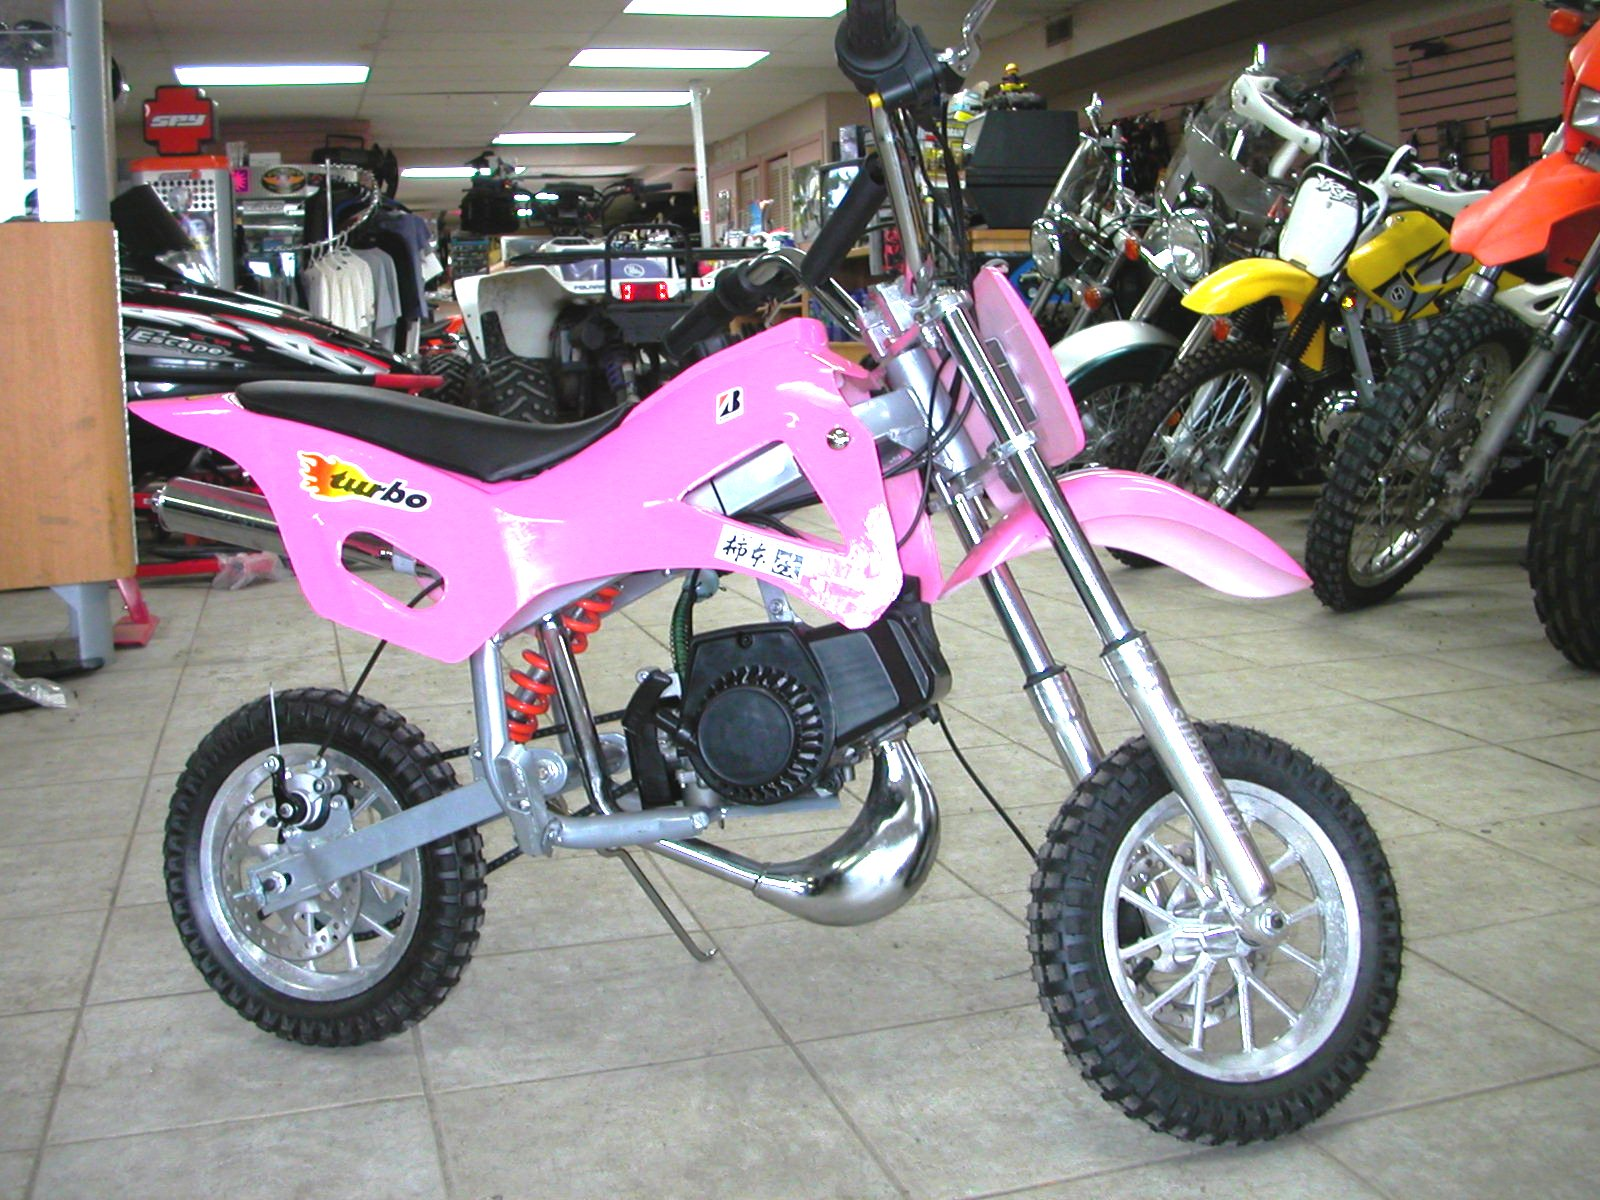 Bikes For Sale Near Me Dirt Bikes For Sale Near Me